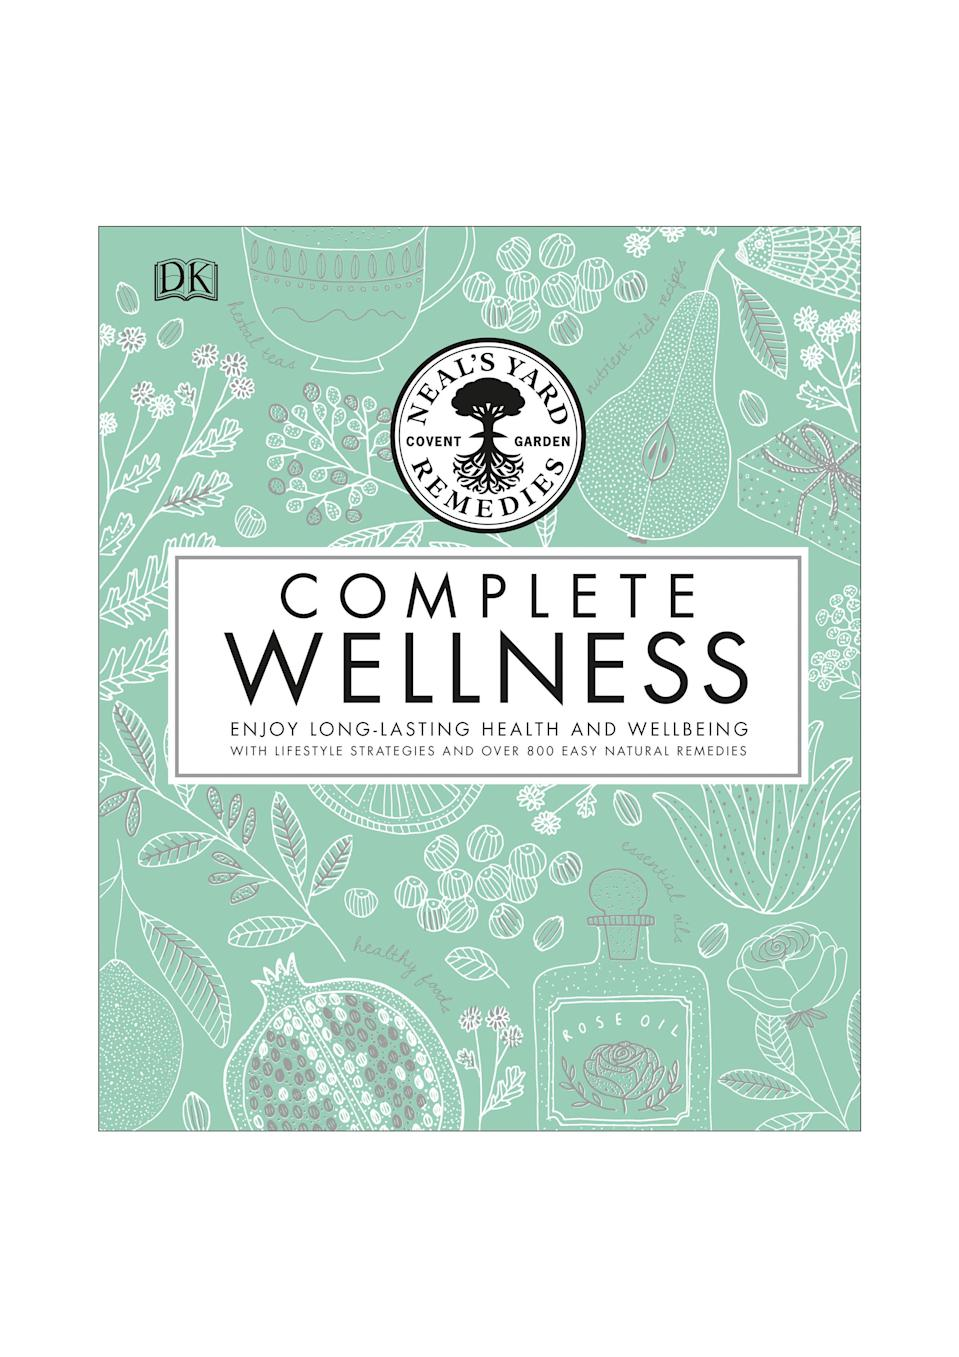 <p>Packed with 800 natural remedies for over 170 common ailments, the Complete Wellness book from Neals Yard Remedies will help you harness the restorative powers of herbs, essential oils, natural foods and holistic therapies to achieve whole body health and harmony. Ideal book shelf material. <em>Available 6 September. </em> </p>